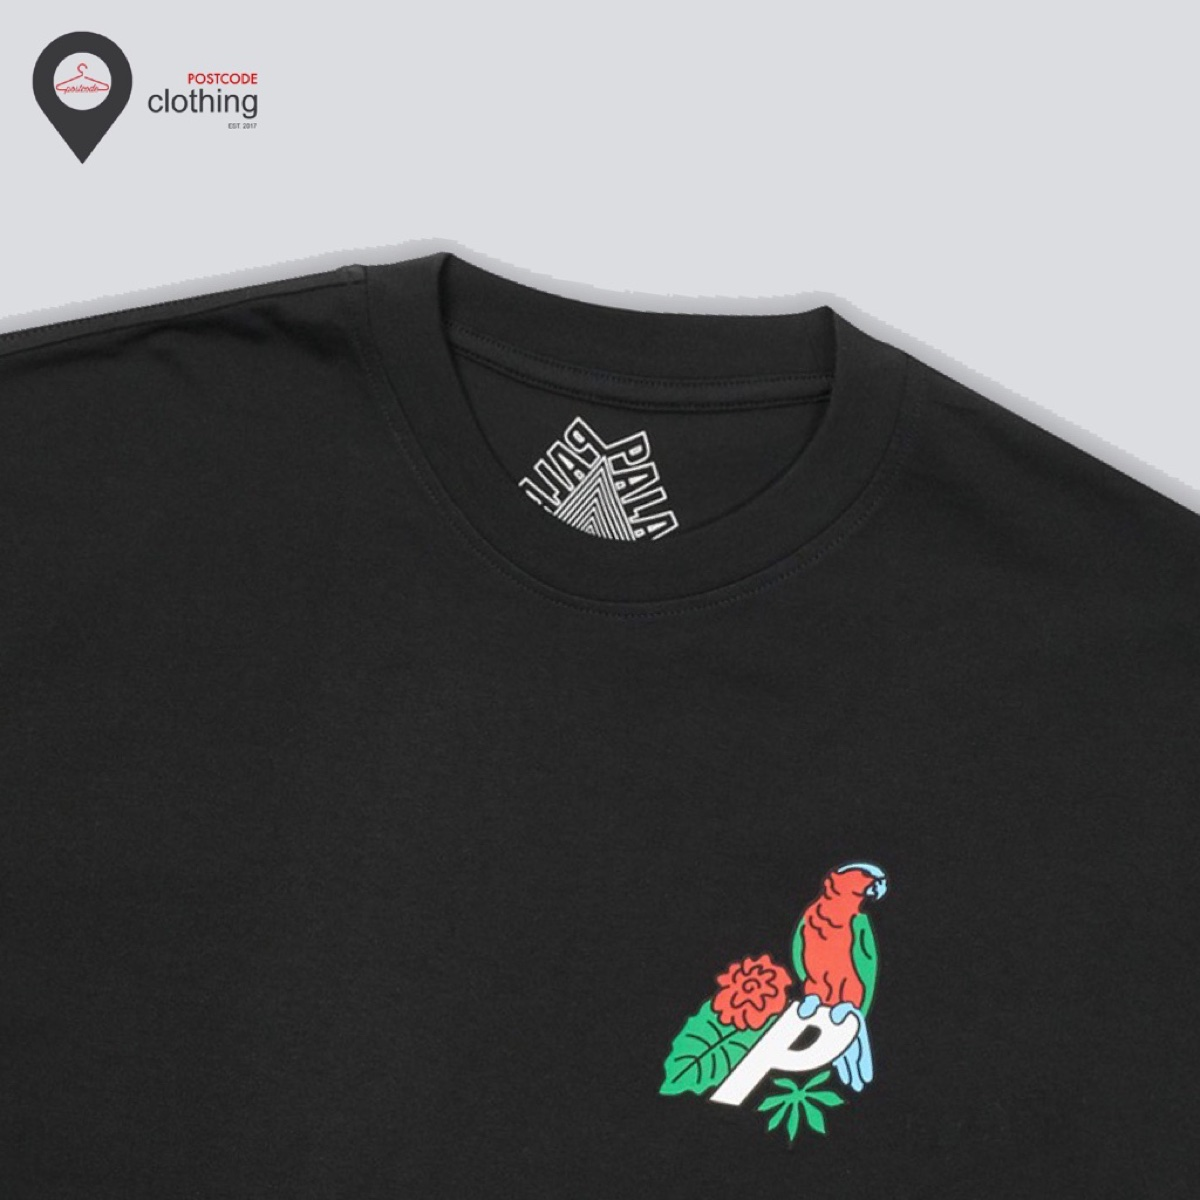 Palace-3 Parrot T-Shirt Black